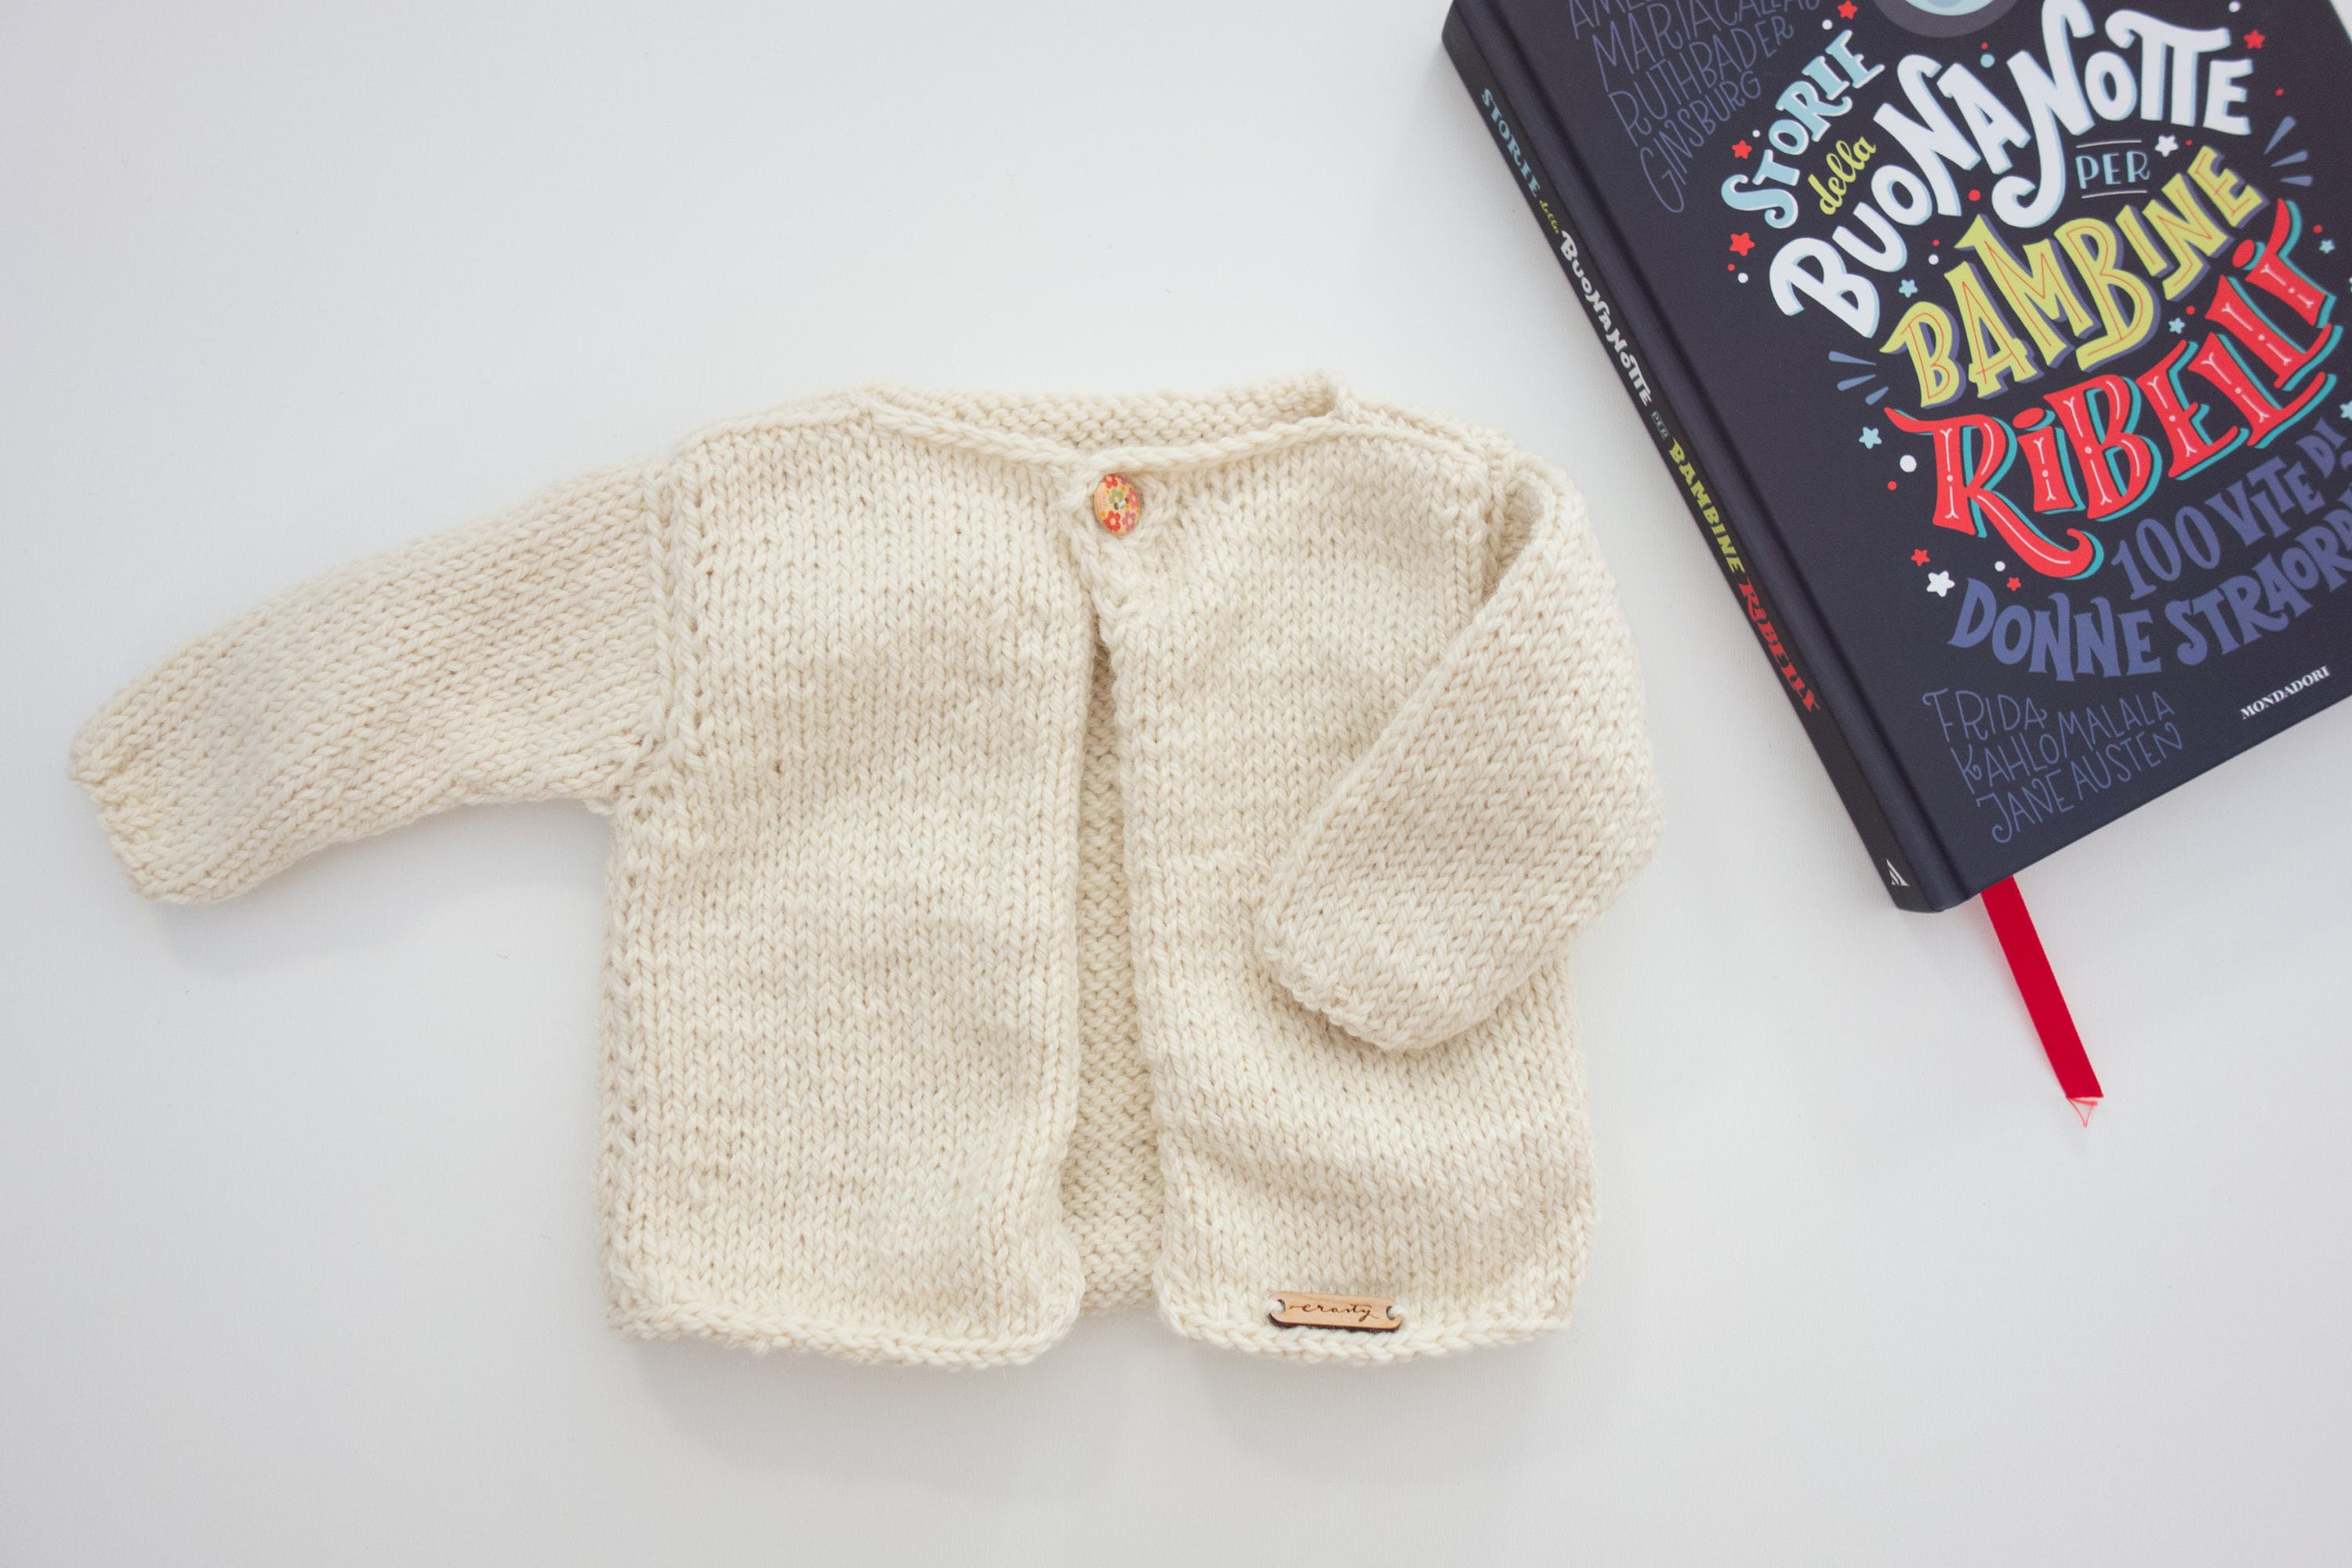 173139036 Knitted baby cardigan for newborn in wool and alpaca for baby